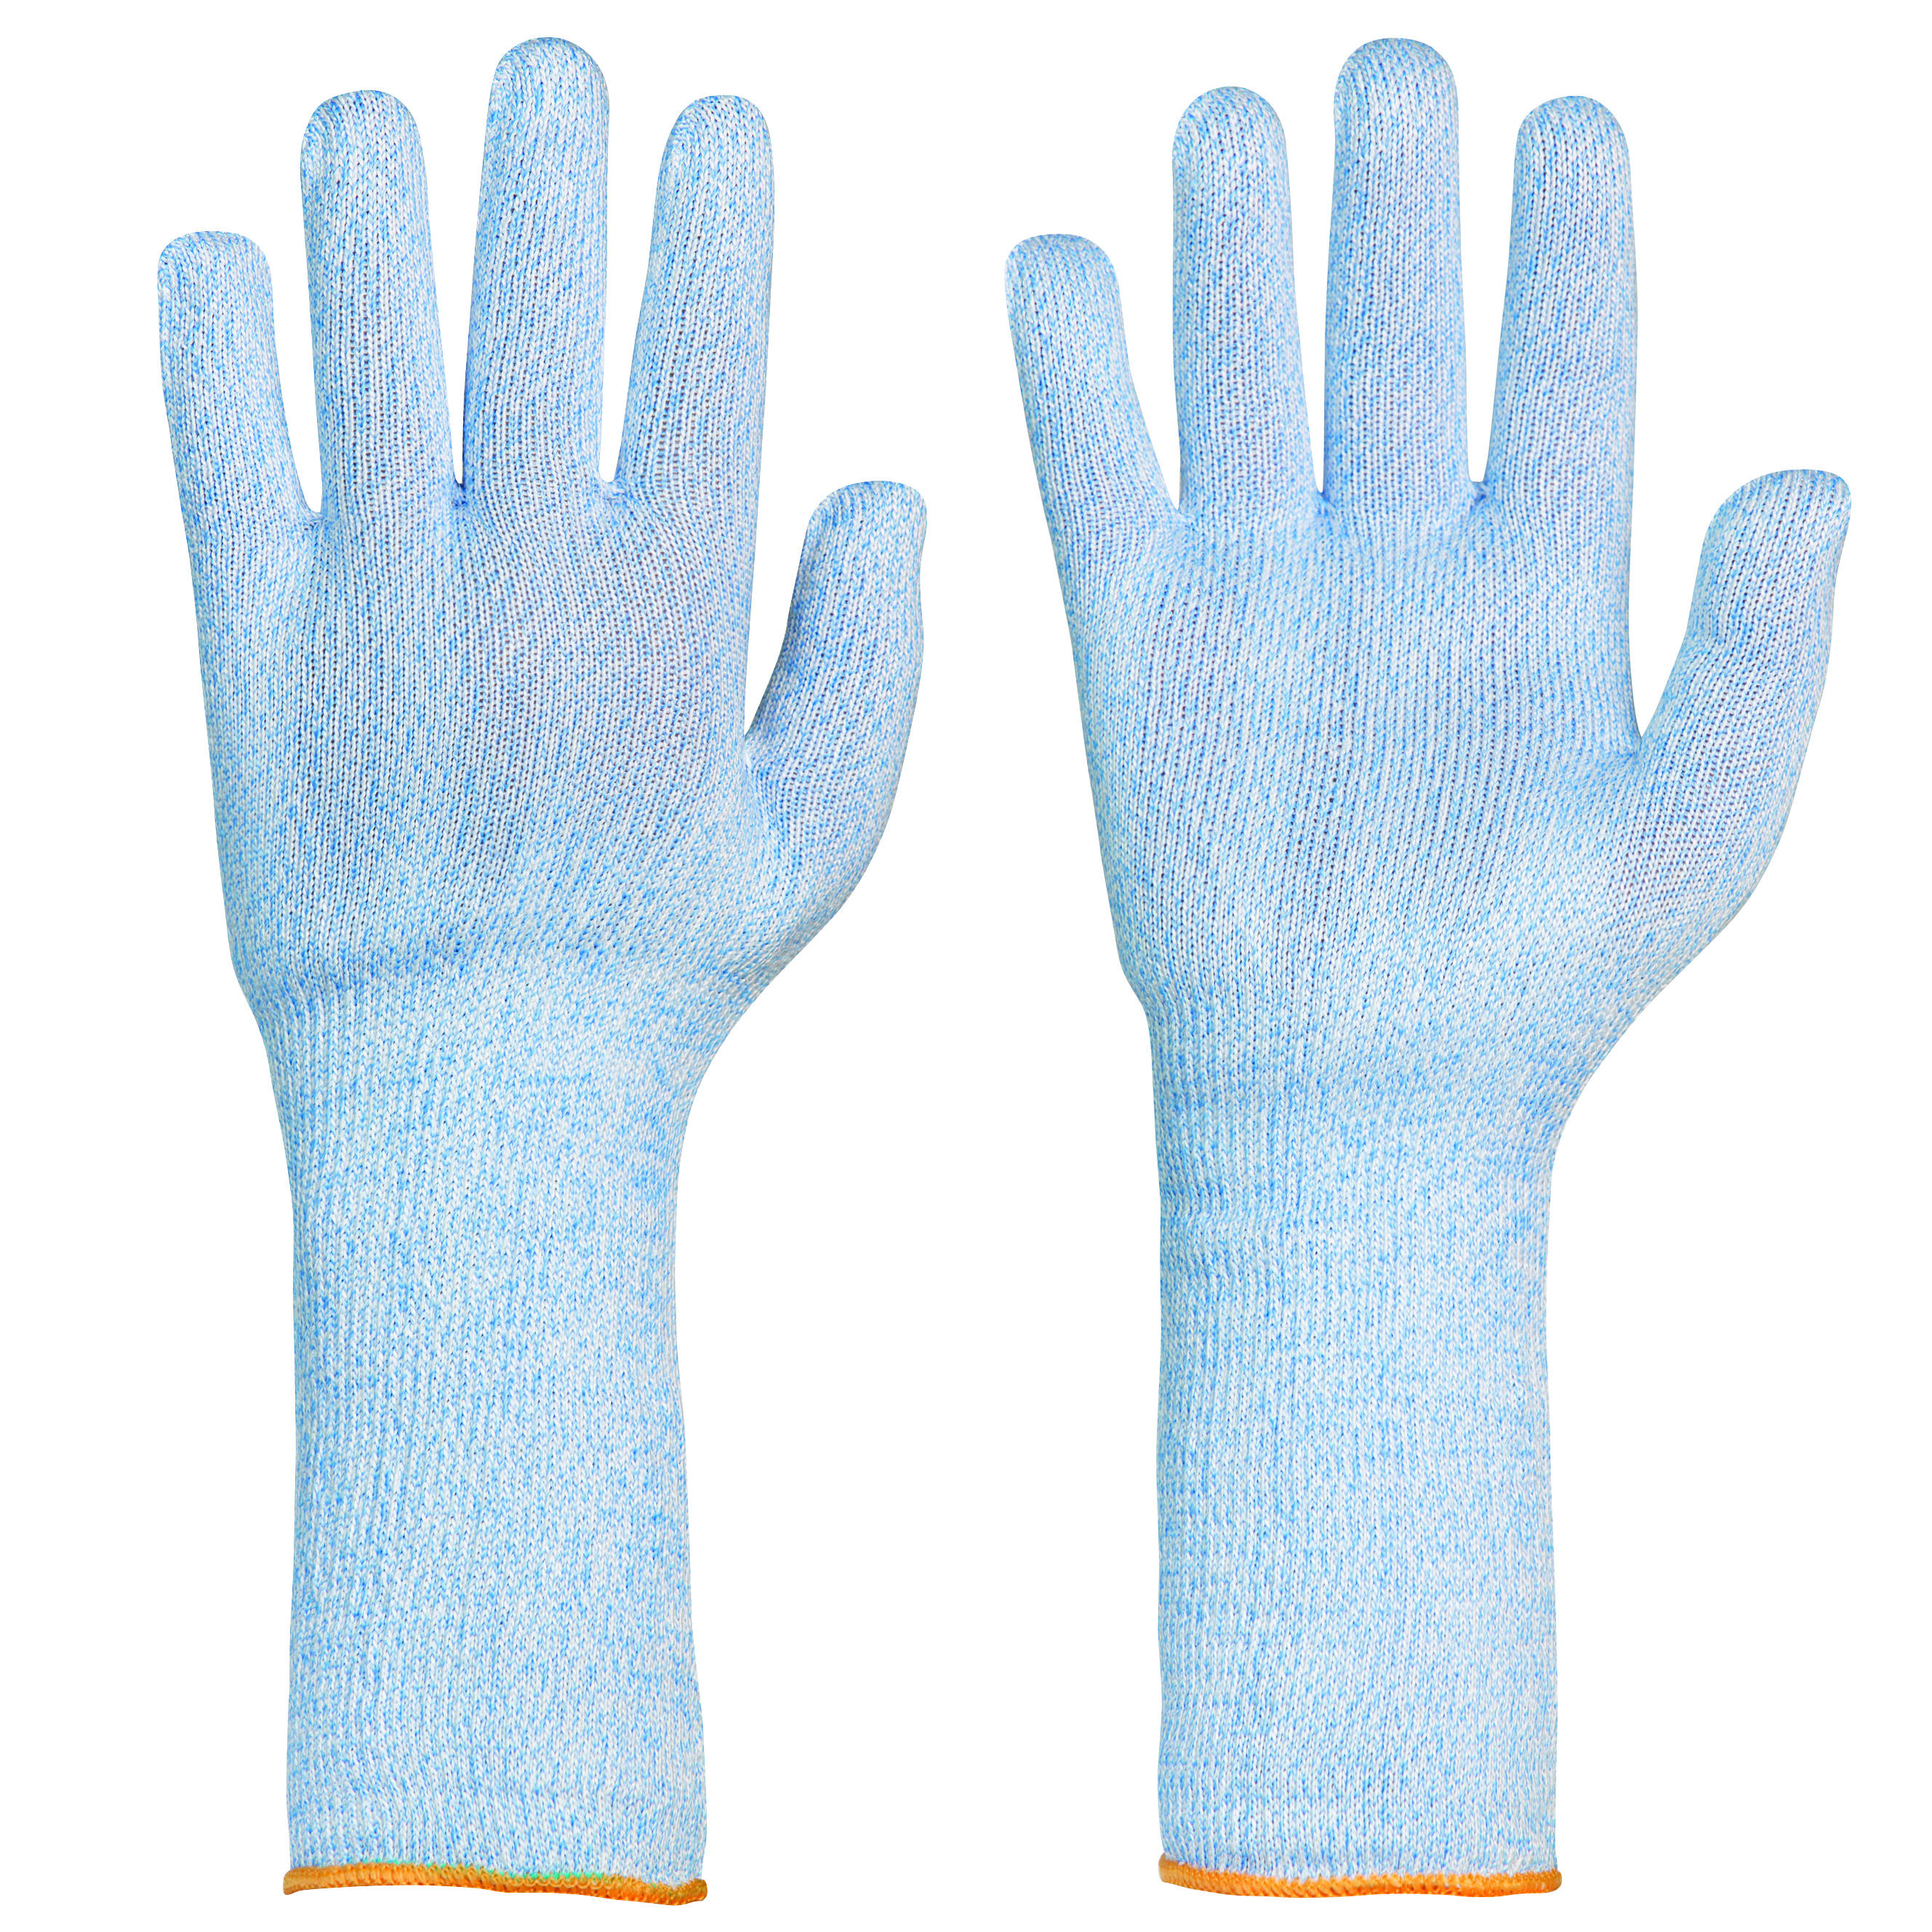 Cut resistant inner gloves protector